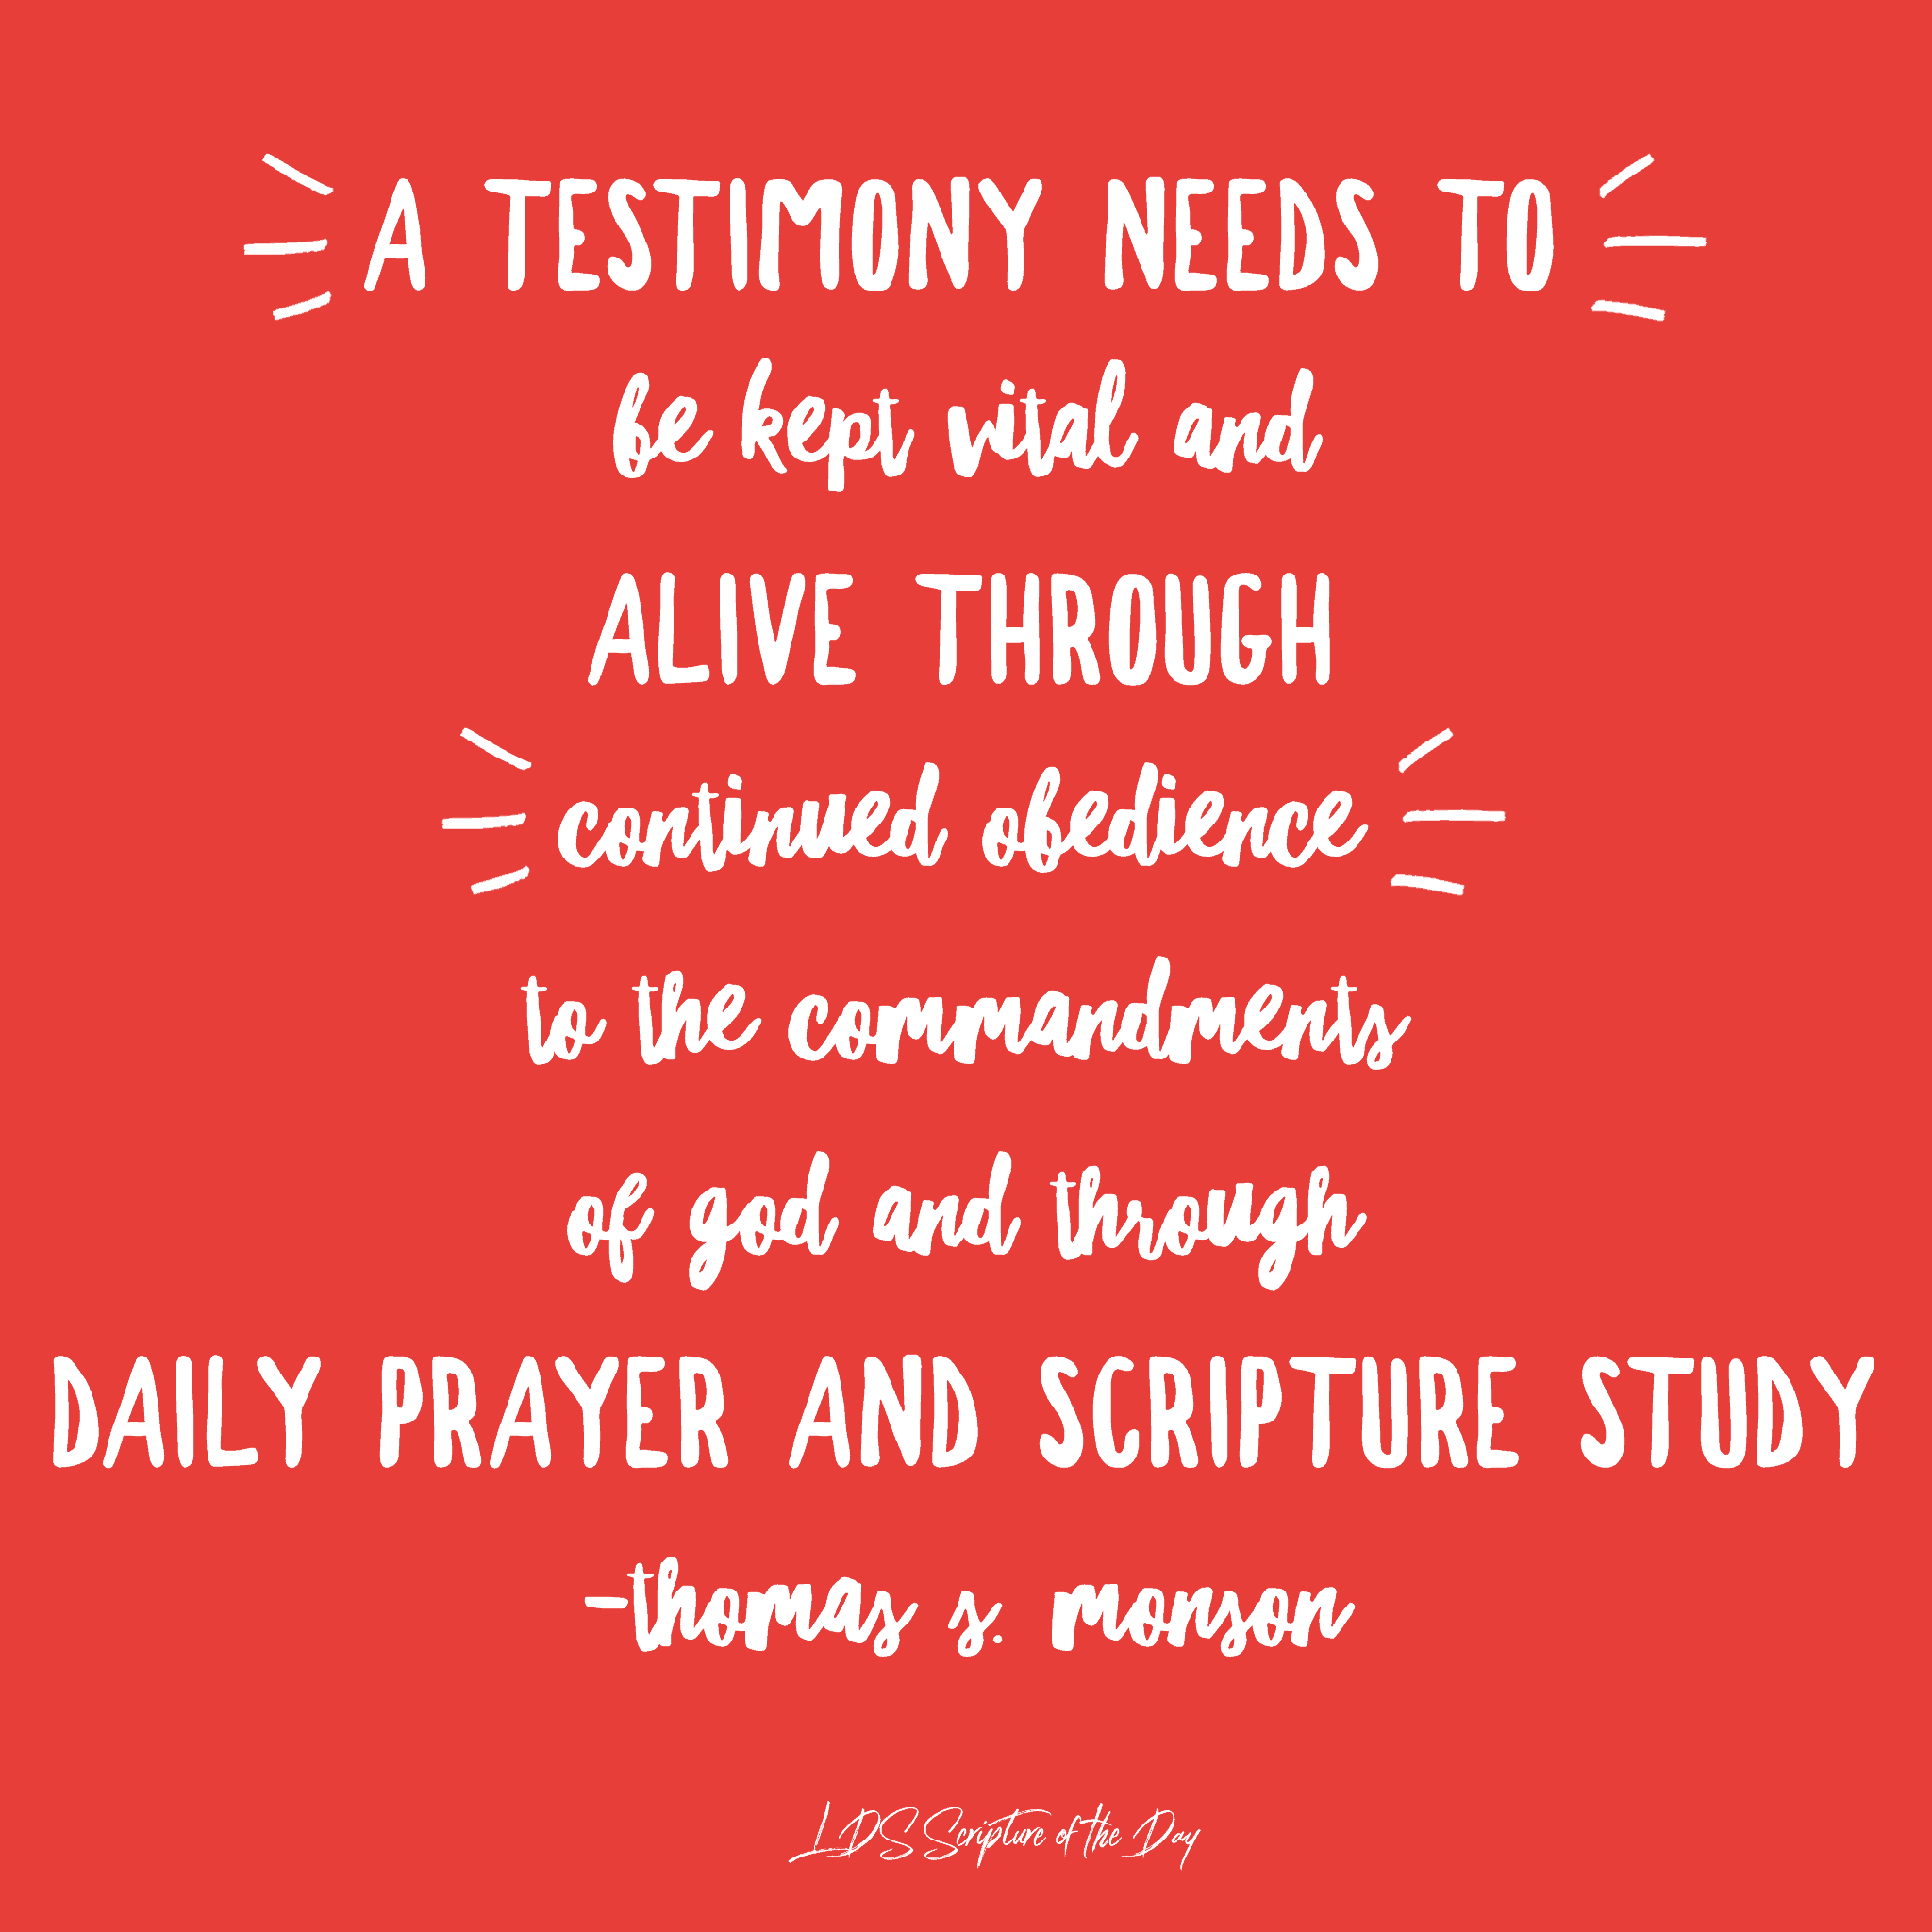 A testimony needs to be kept vital and alive through continued obedience to the commandments of God and through daily prayer and scripture study. —Thomas S. Monson